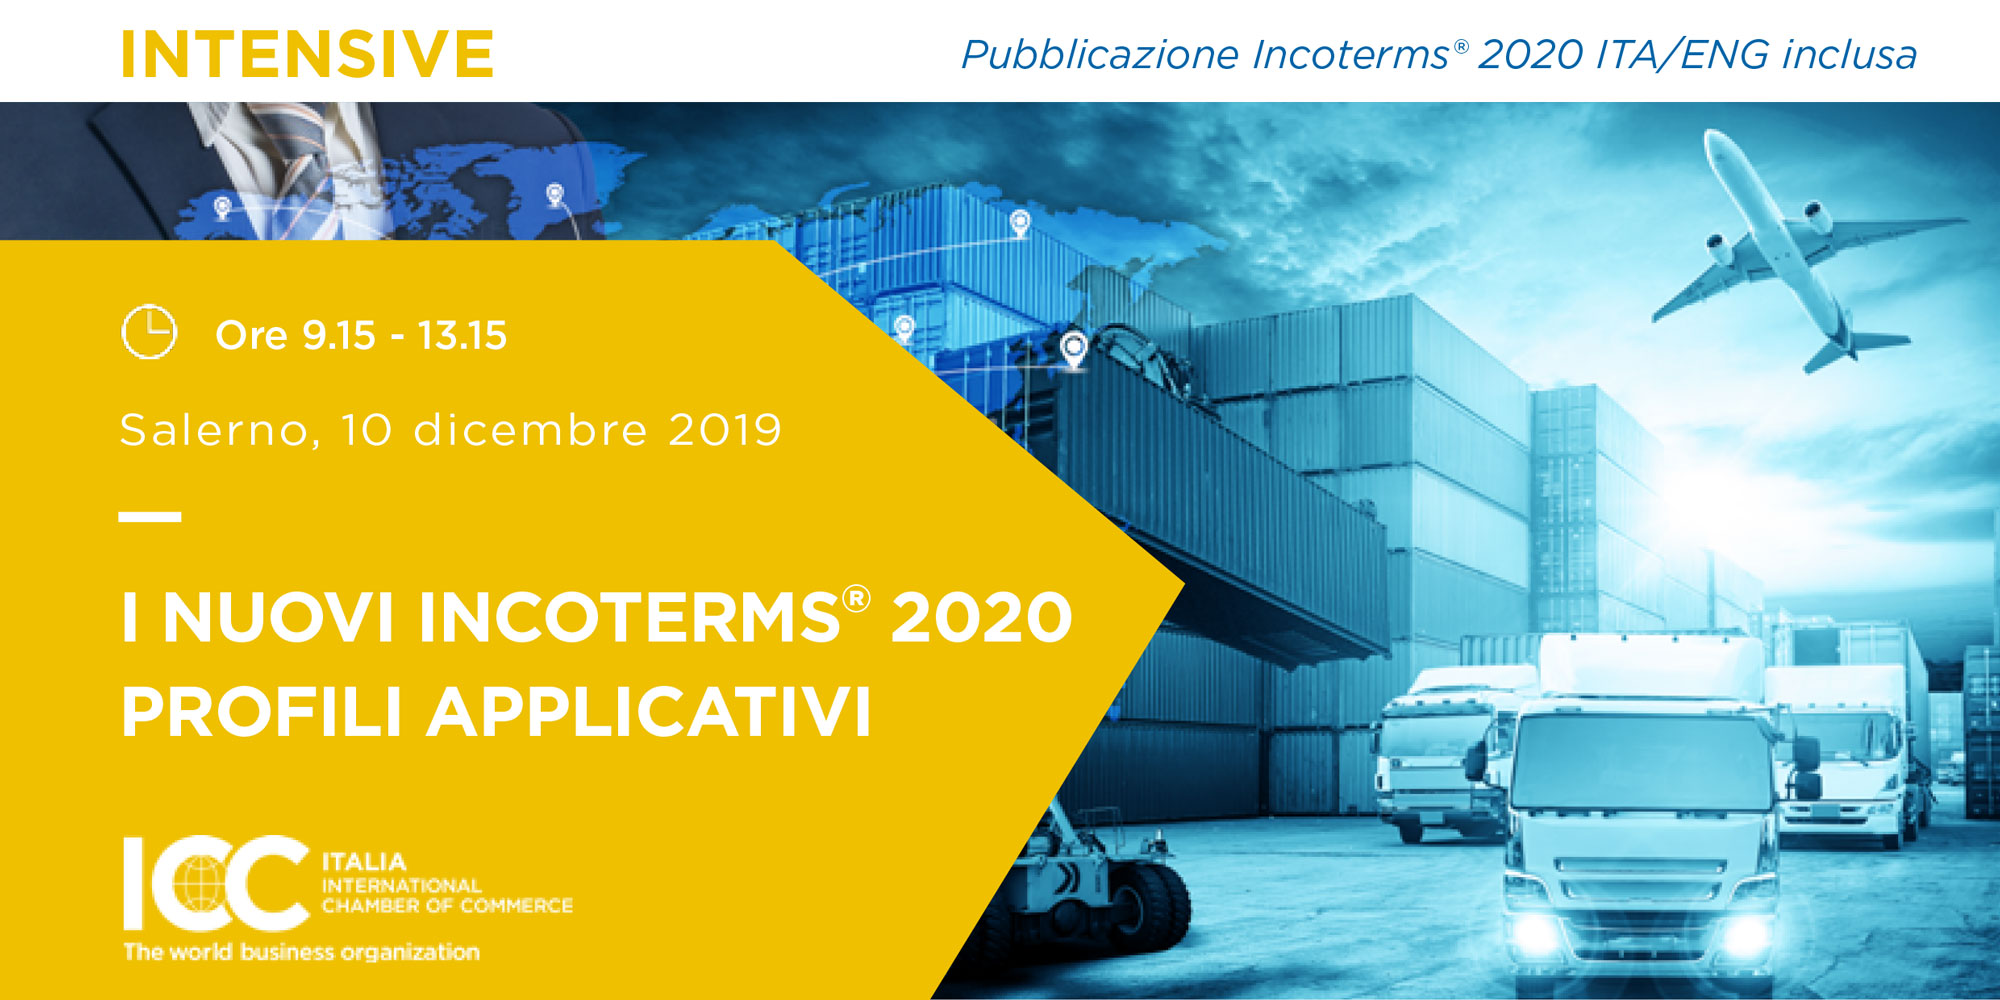 I nuovi Incoterms® 2020 profili applicativi